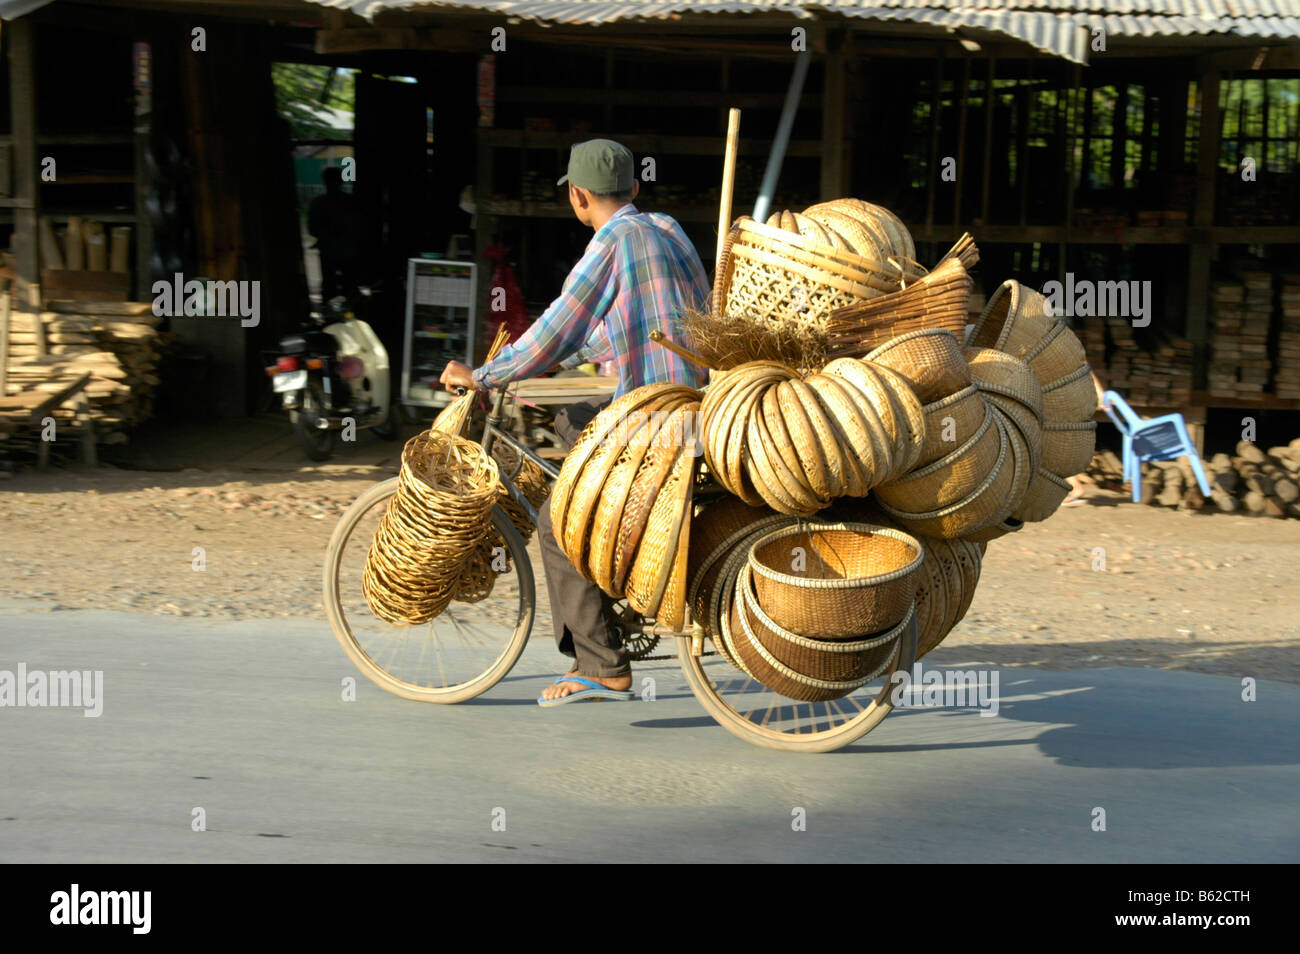 Crammed full bicycle with baskets, near Phnom Penh, Cambodia, Southeast Asia Stock Photo